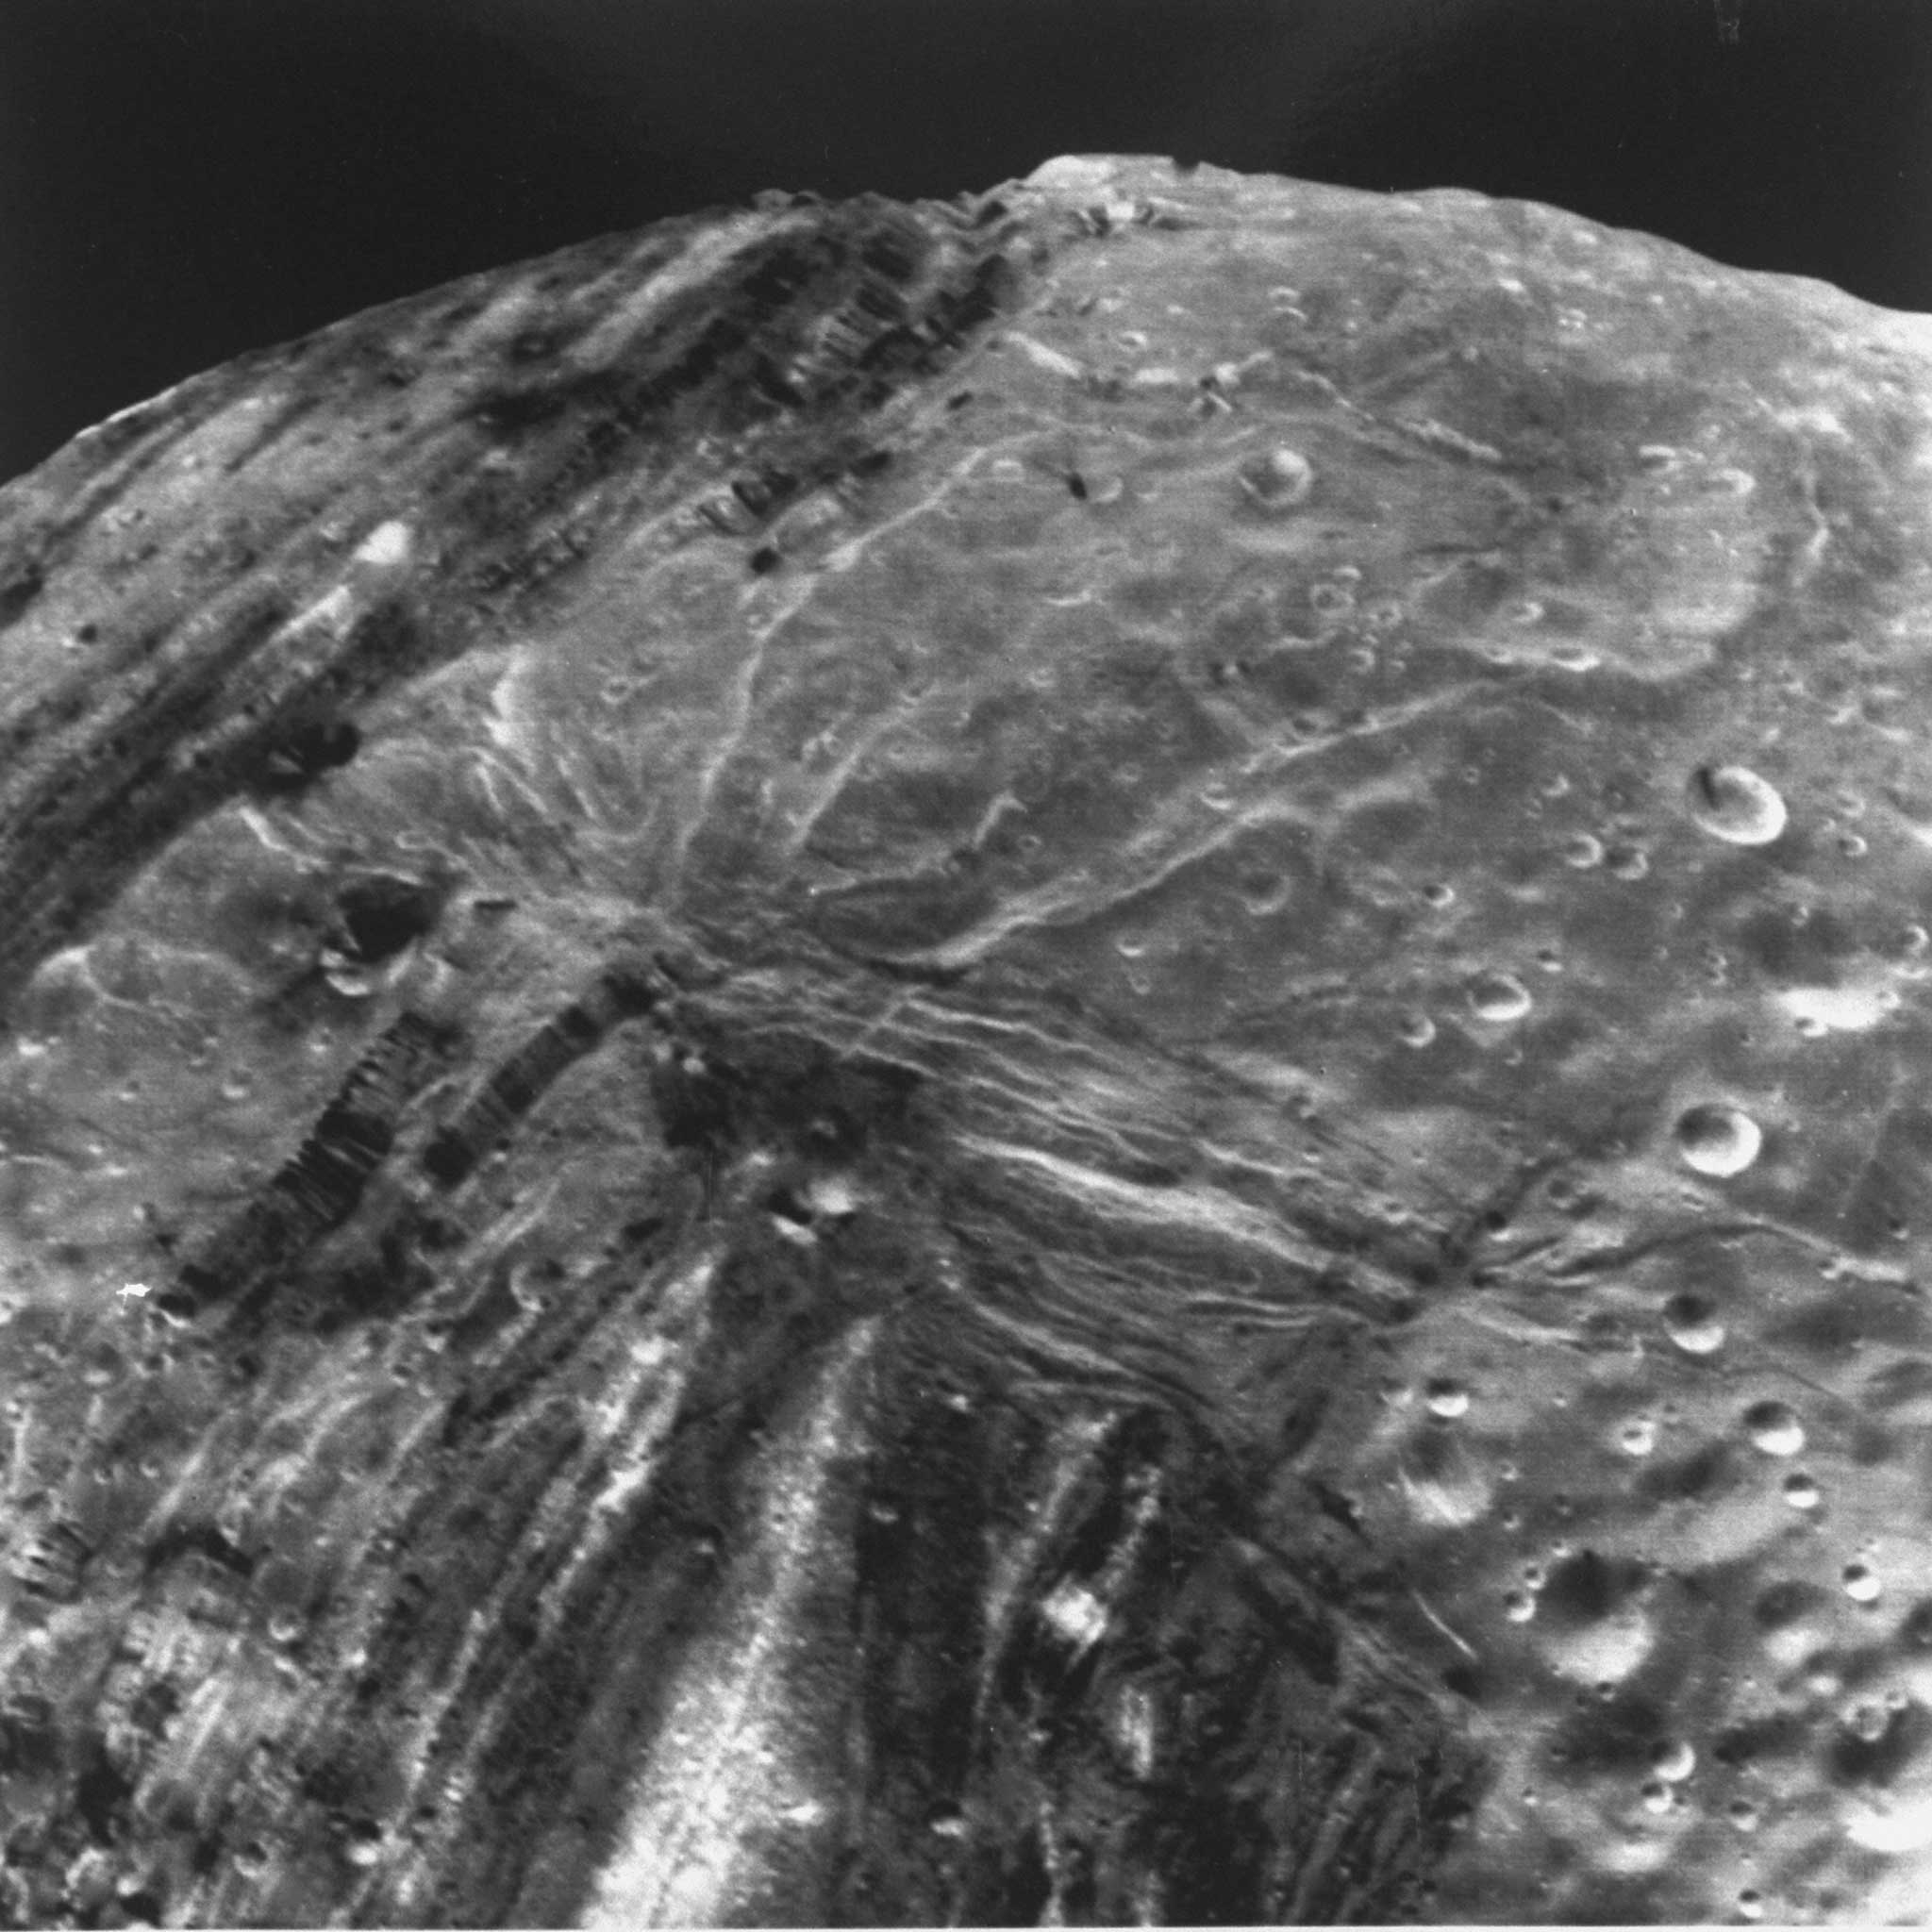 High-resolution image of the surface of Miranda, one of Uranus' largest moons, taken from the Voyager 2 spacecraft